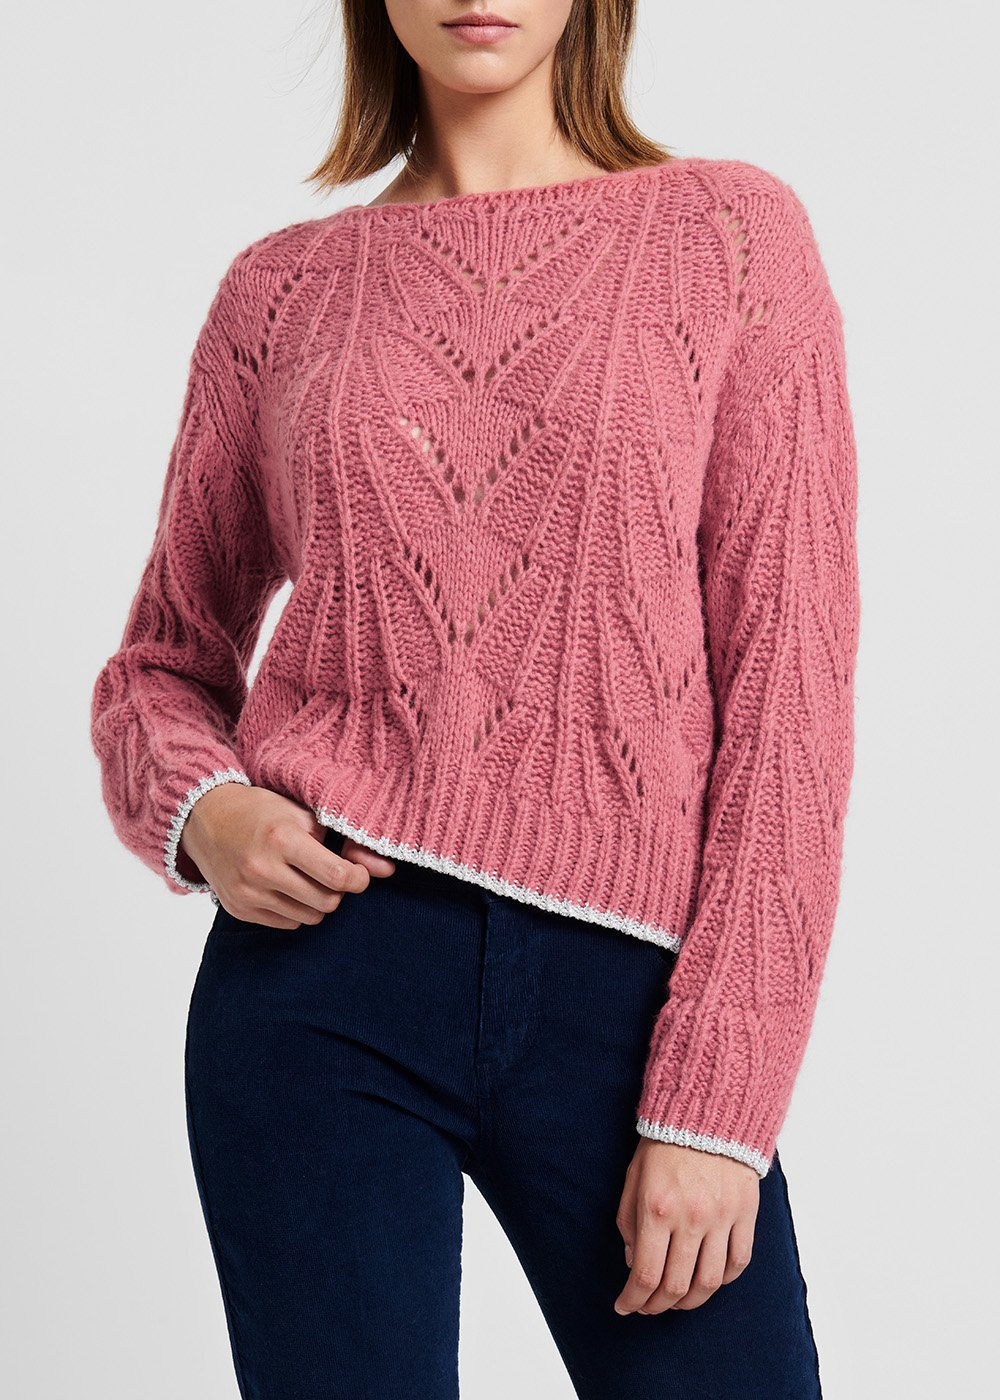 Floral-coloured wool sweater with contrast lurex edges - Floreale - Woman